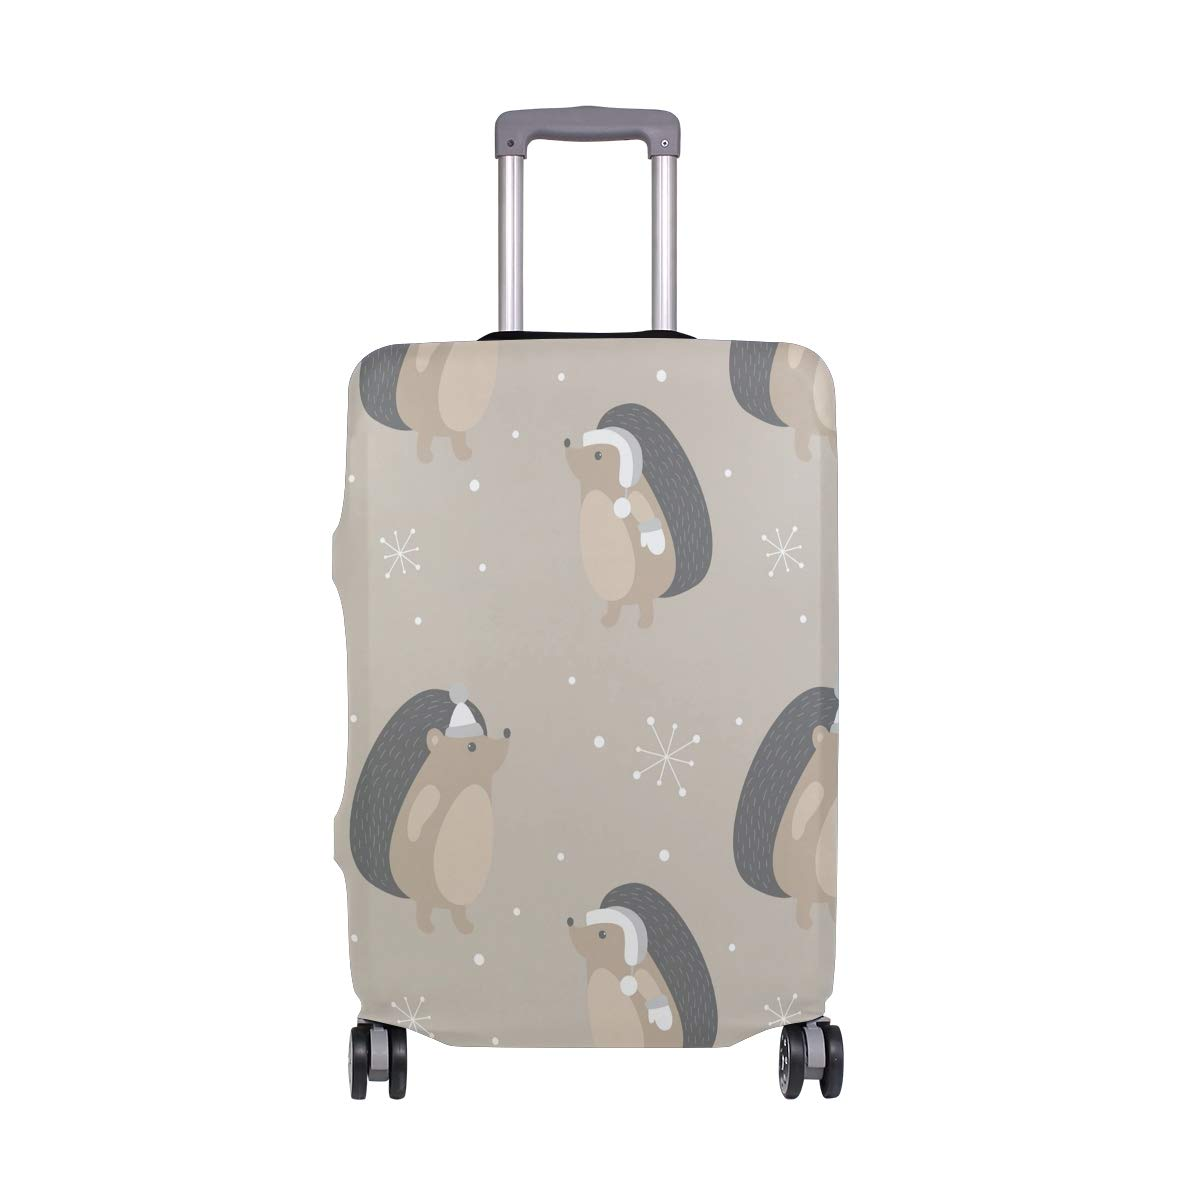 Travel Luggage Cover Cute Cartoon Animals Hedgehog Elastic Suitcase Protector Washable Baggage Covers Fits 18-32 inch